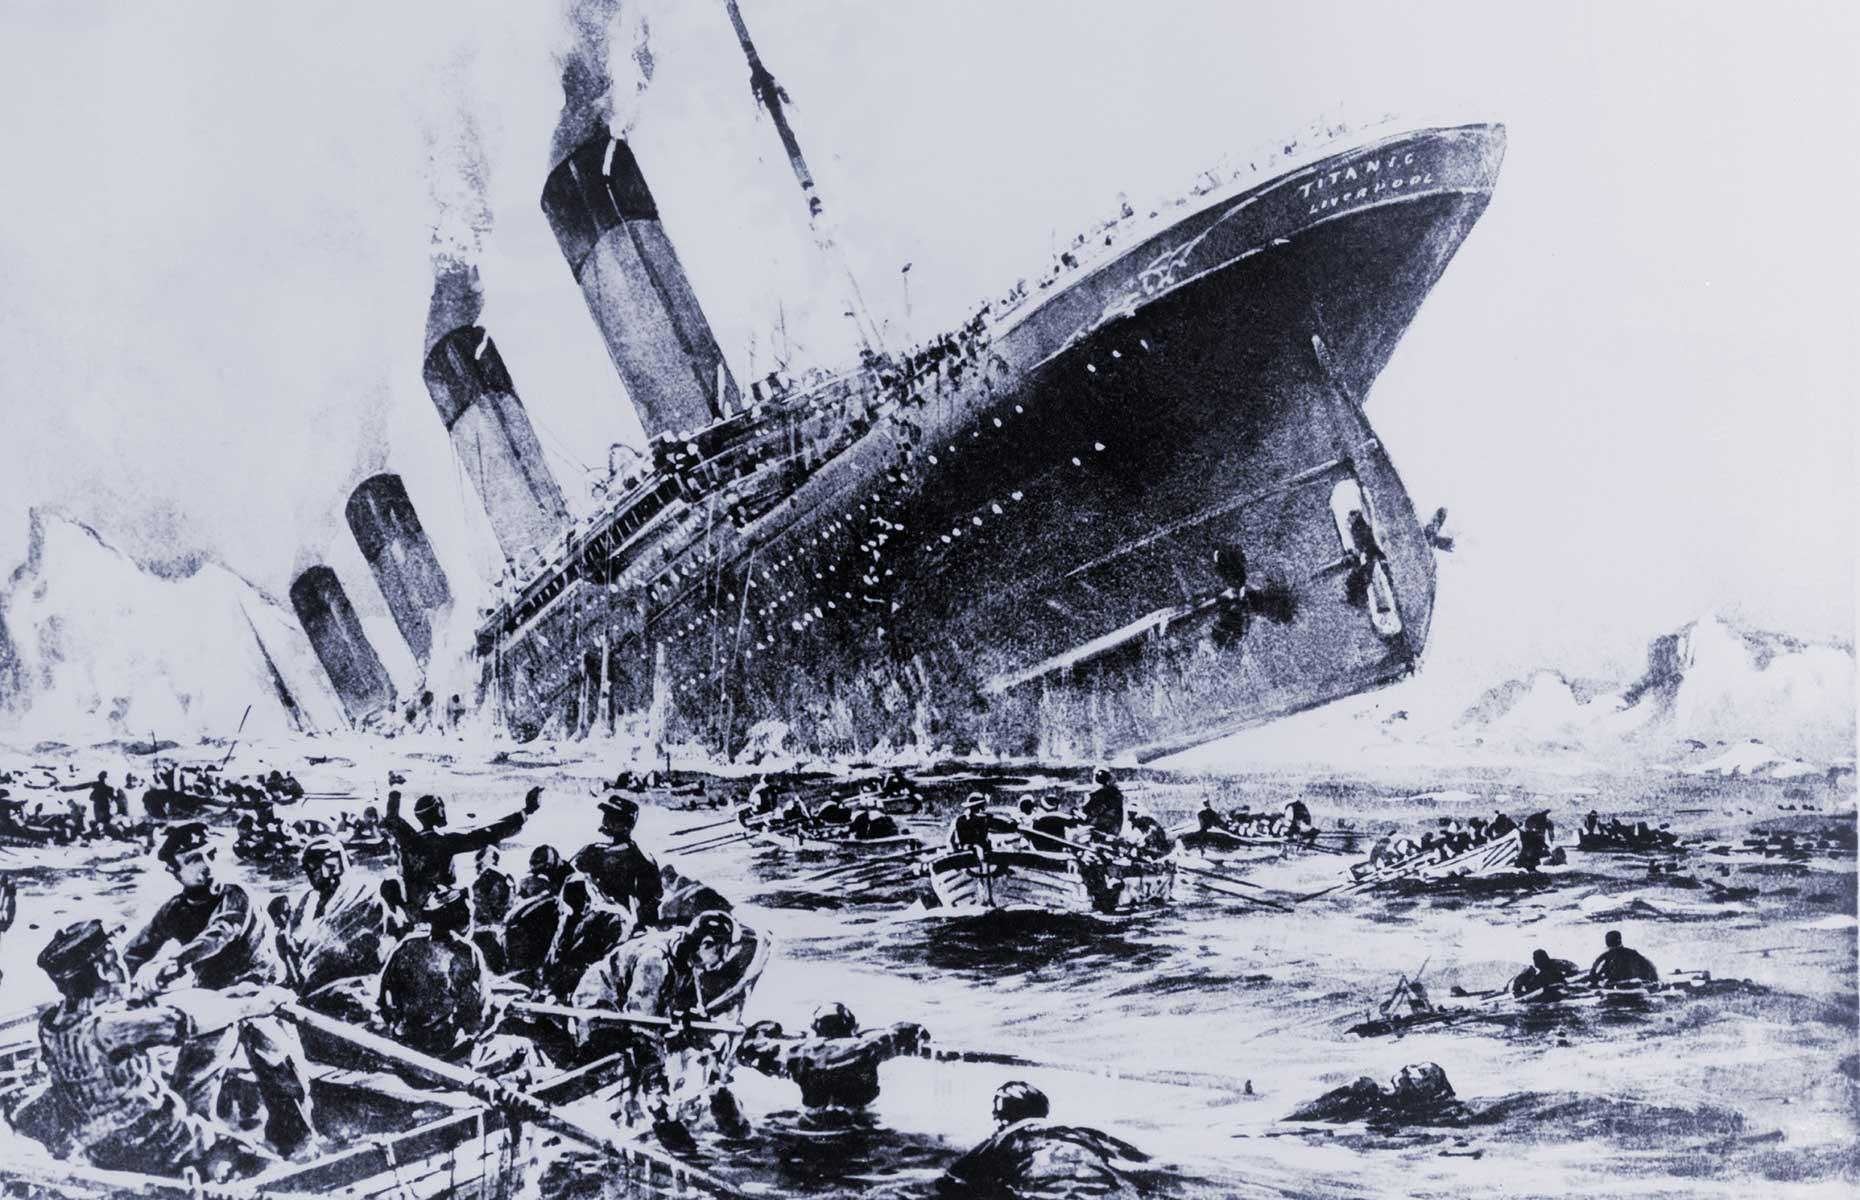 """Slide 30 of 46: Sadly all this opulence was destined to meet a watery end when, at 11.40pm on 14 April, the Titanic collided with an iceberg. Frederick Fleet, the Titanic's lookout was one of the first to spot the iceberg, raising the alarm with the words """"iceberg right ahead"""". Frederick was relying on his eyes only as the Titanic's binoculars were locked away in the crow's nest, the Titanic's lookout point."""